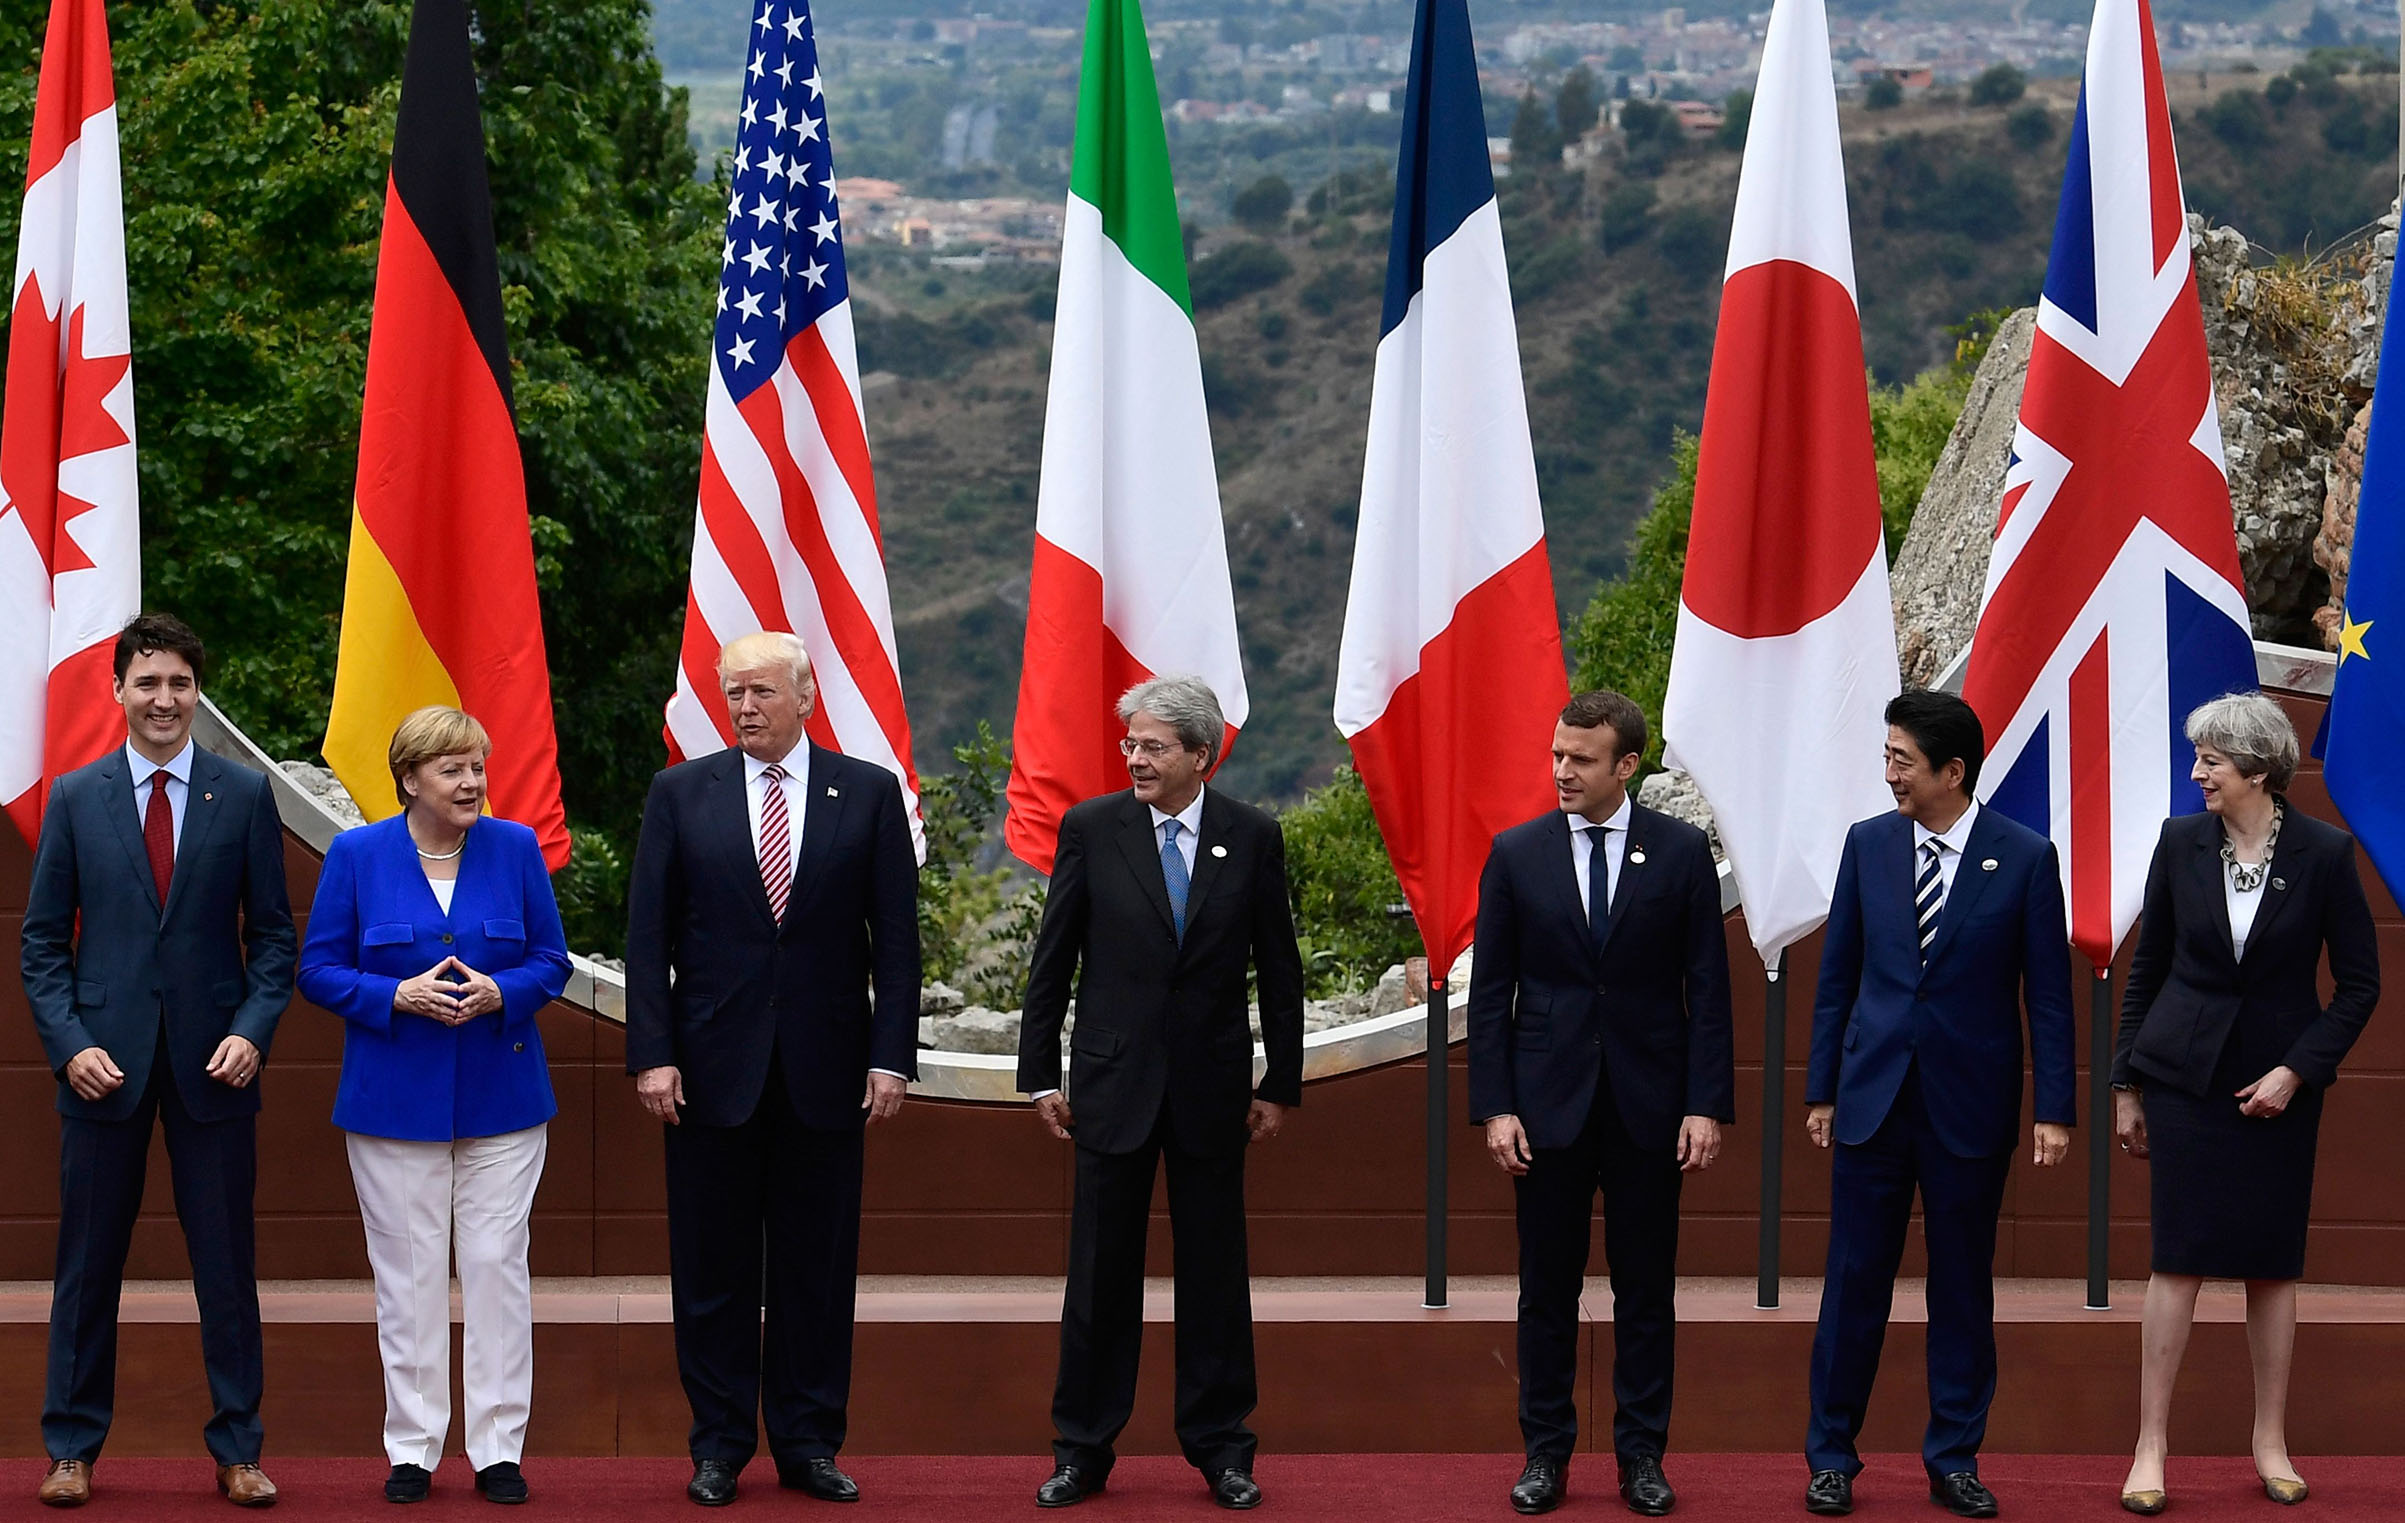 U.S. allies at the 2017 G-7 summit in Sicily; this year's meeting could be more awkward